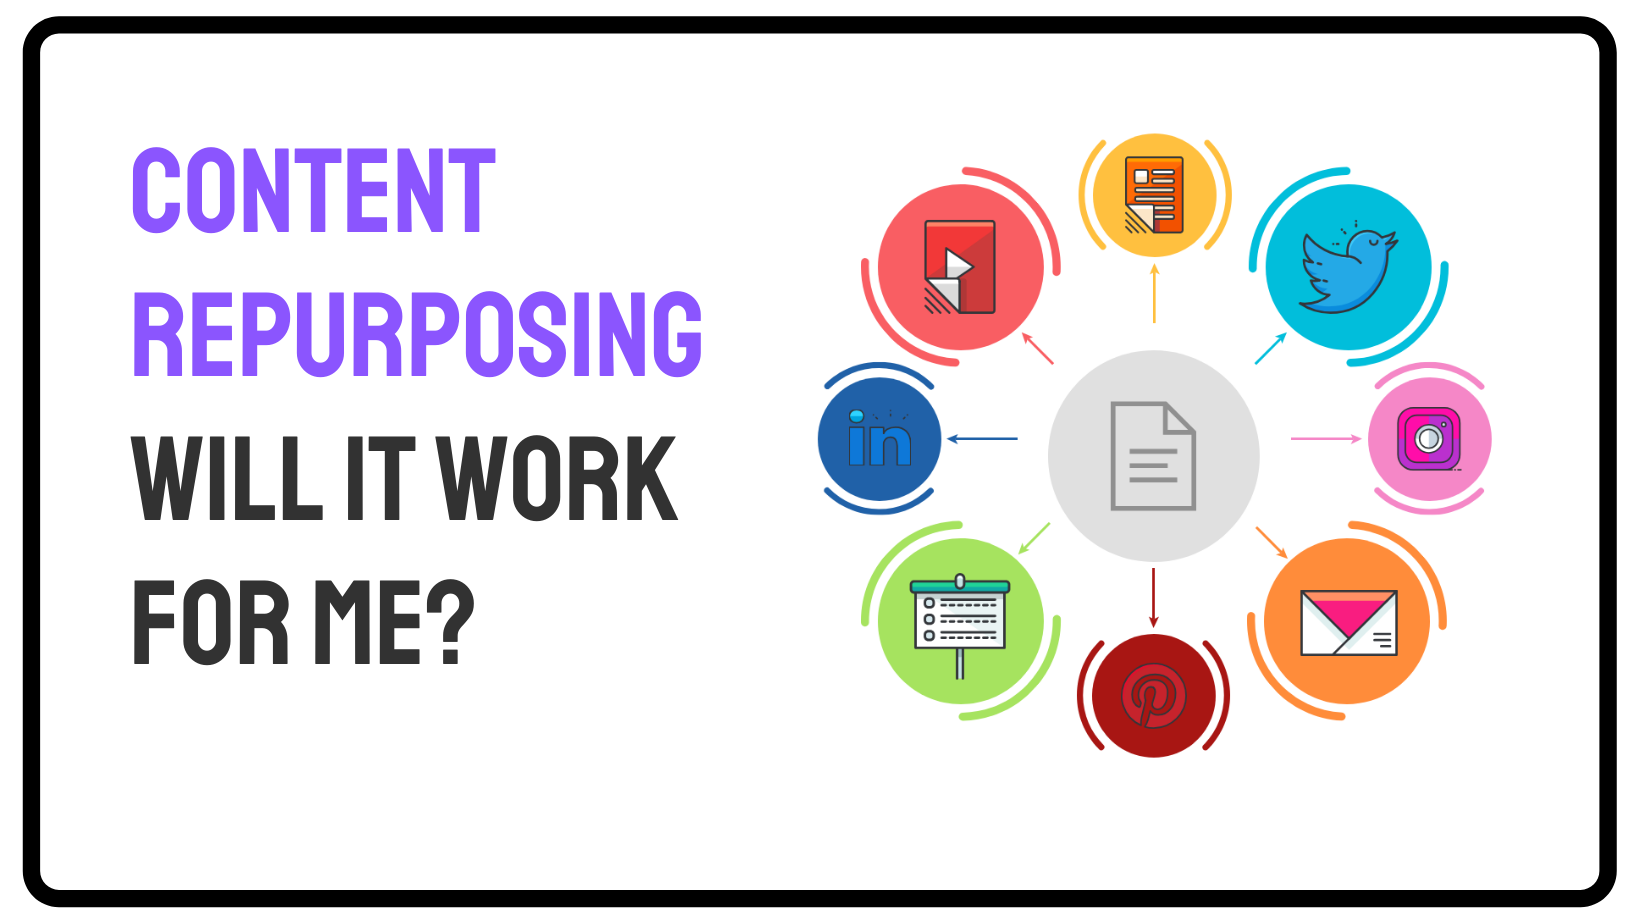 Does Content Repurposing work for everyone?